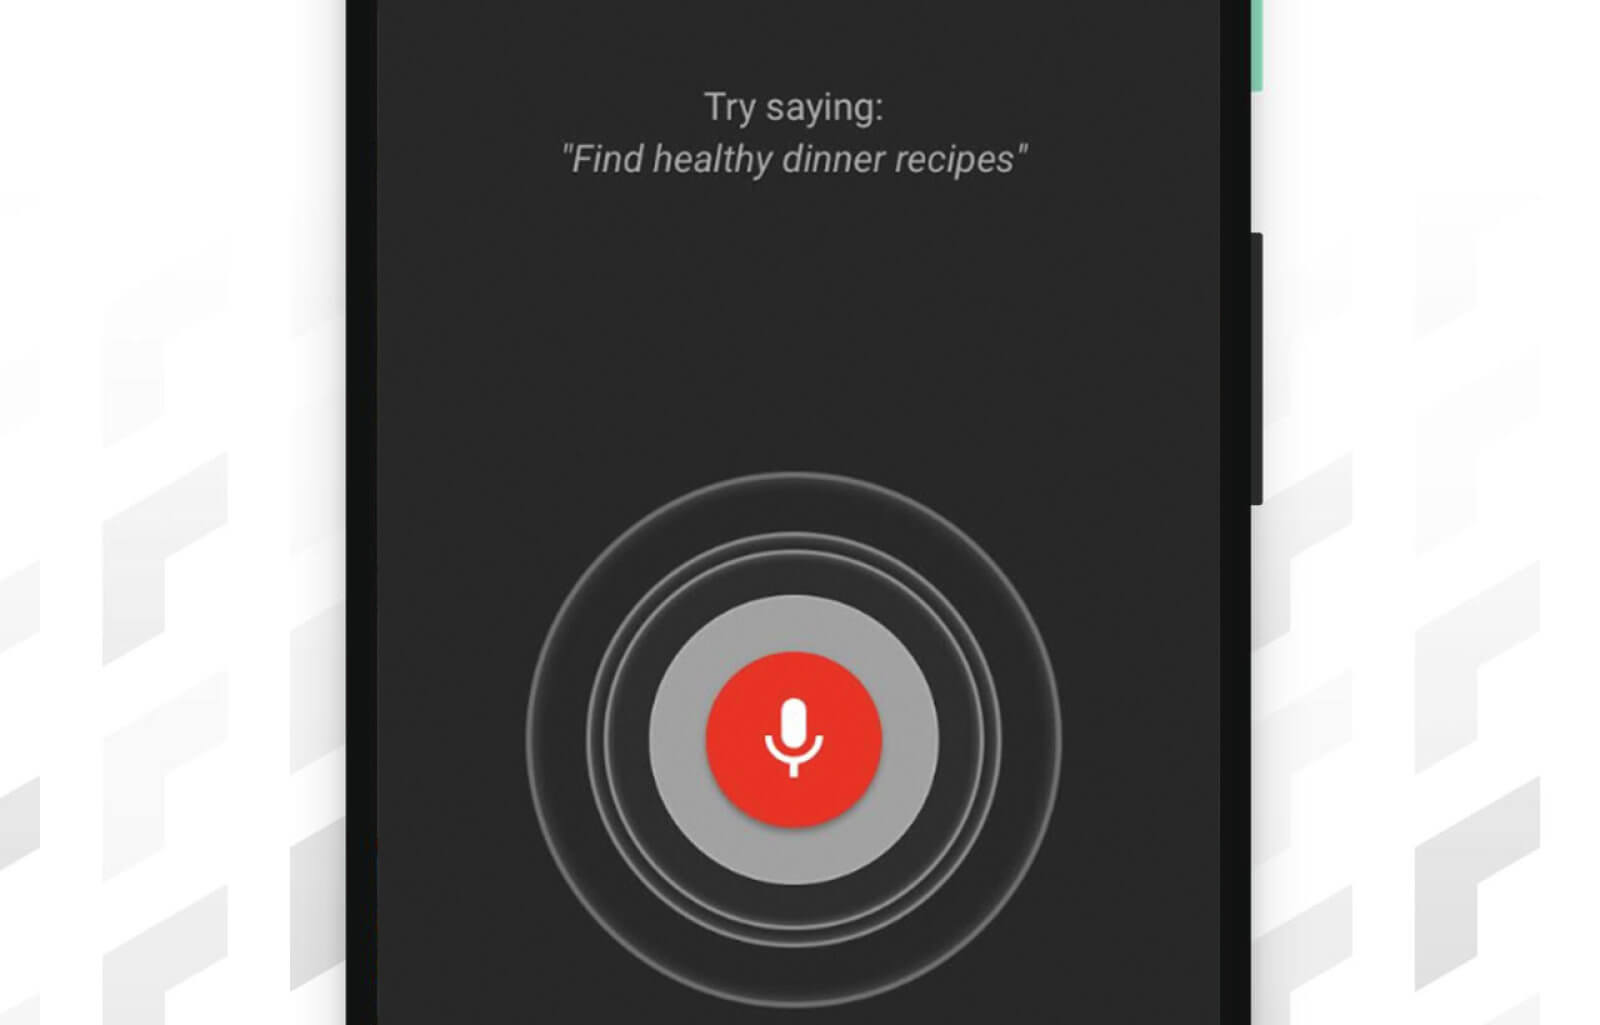 YouTube mobile now has voice search even while casting